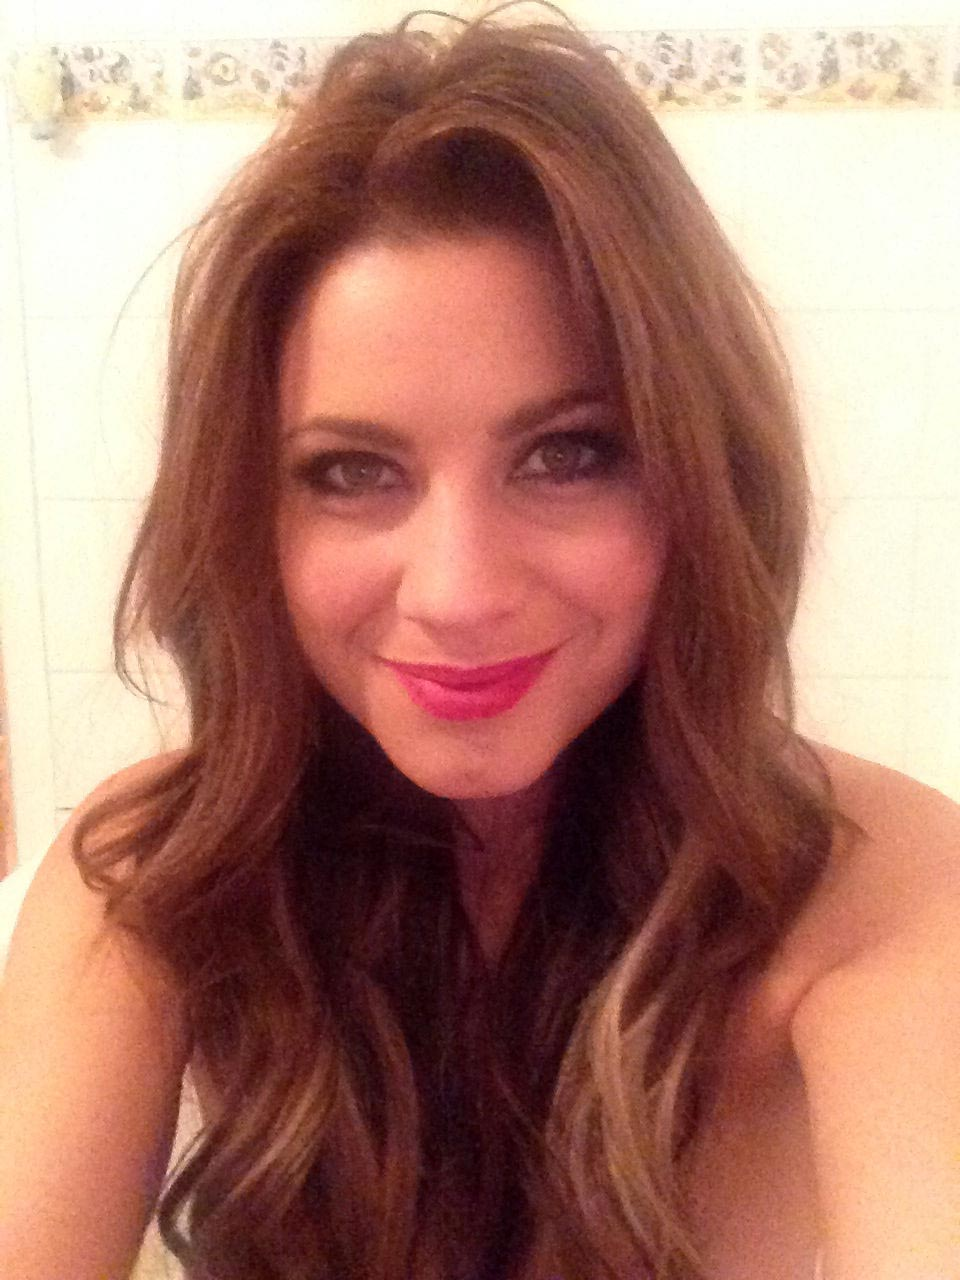 TV Presenter Kirsty Duffy Nude Leaked Photos ! - Scandal Planet